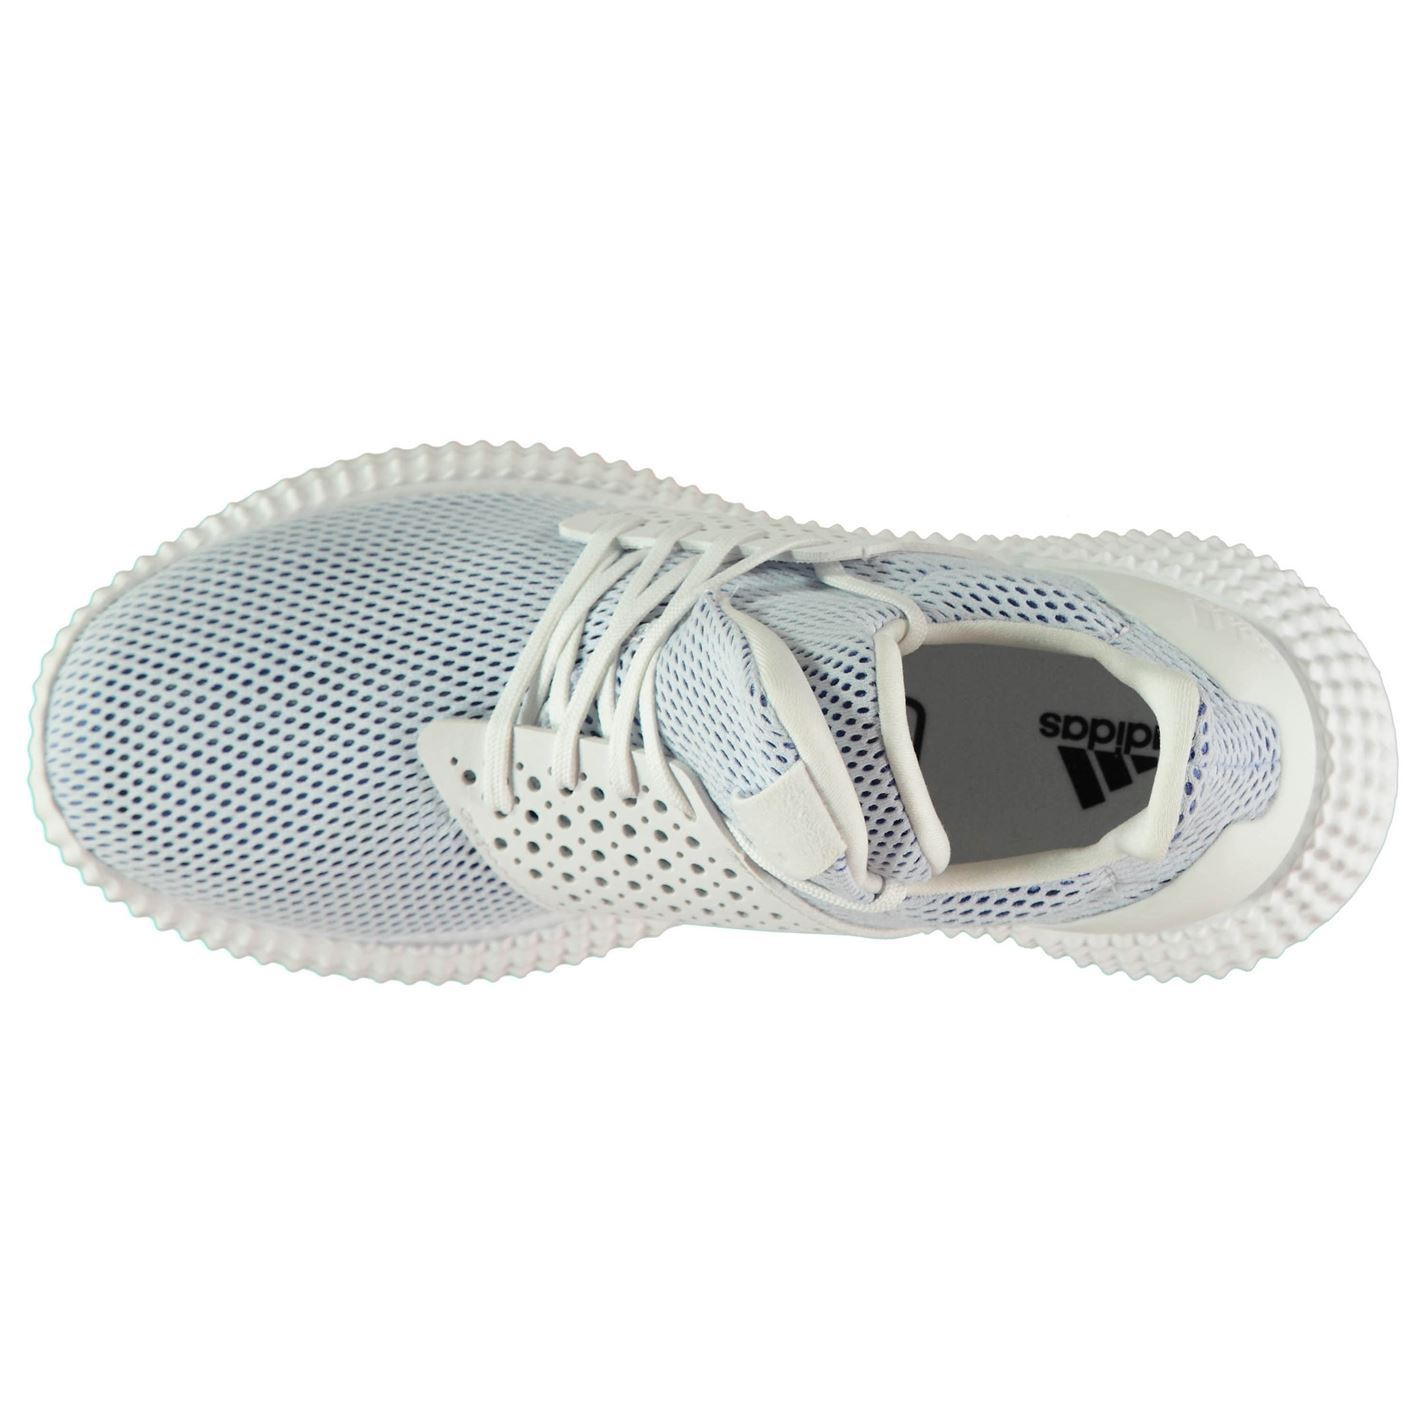 Details about adidas Athletics 24 7 Fitness Training Shoes Womens WhiteBlue Trainers Sneakers